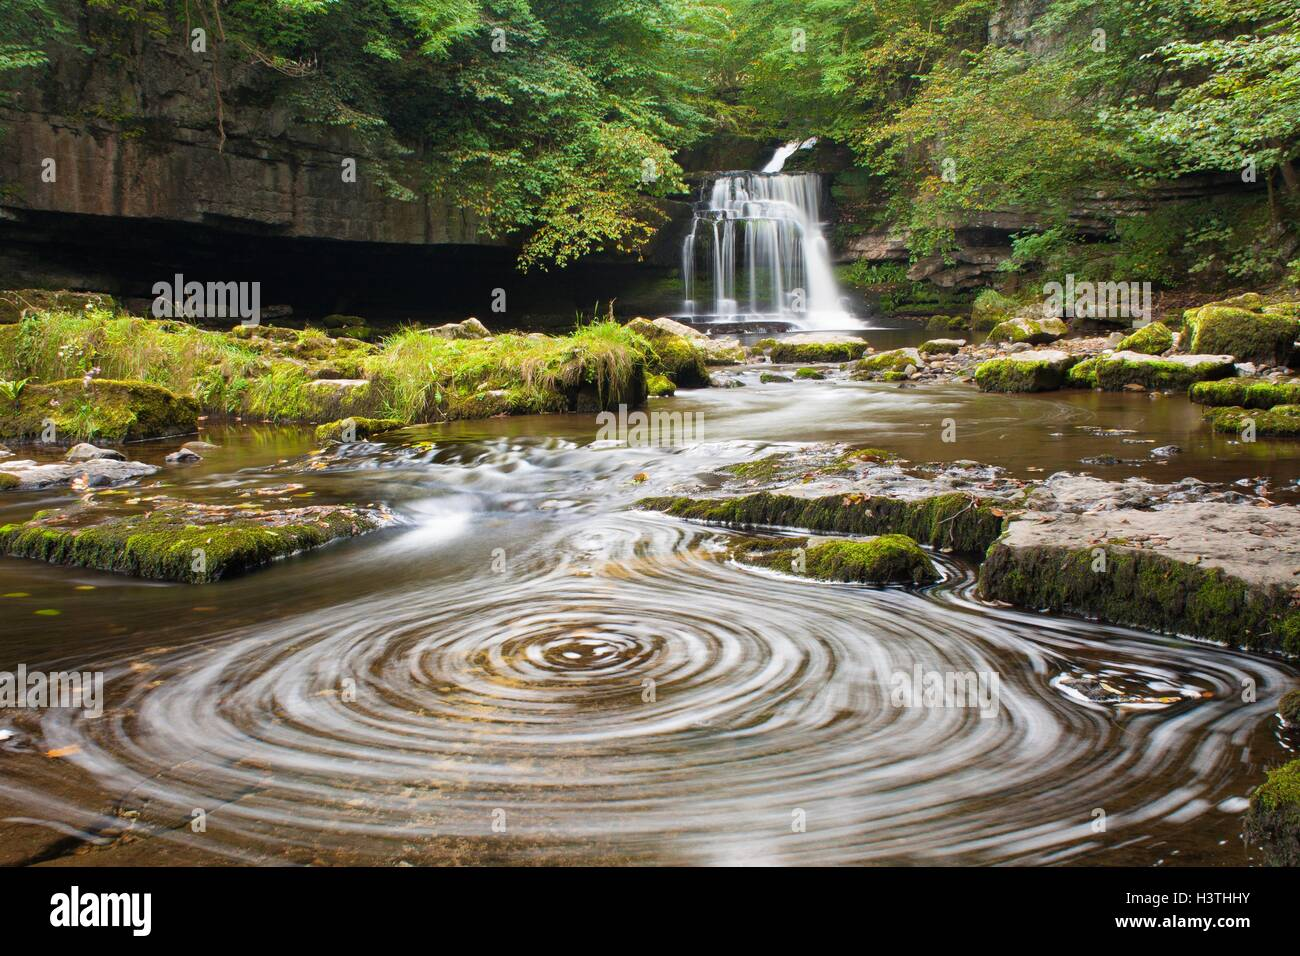 West Burton Falls, or Cauldron Force, on the edge of Wensleydale in the Yorkshire Dales National Park. - Stock Image